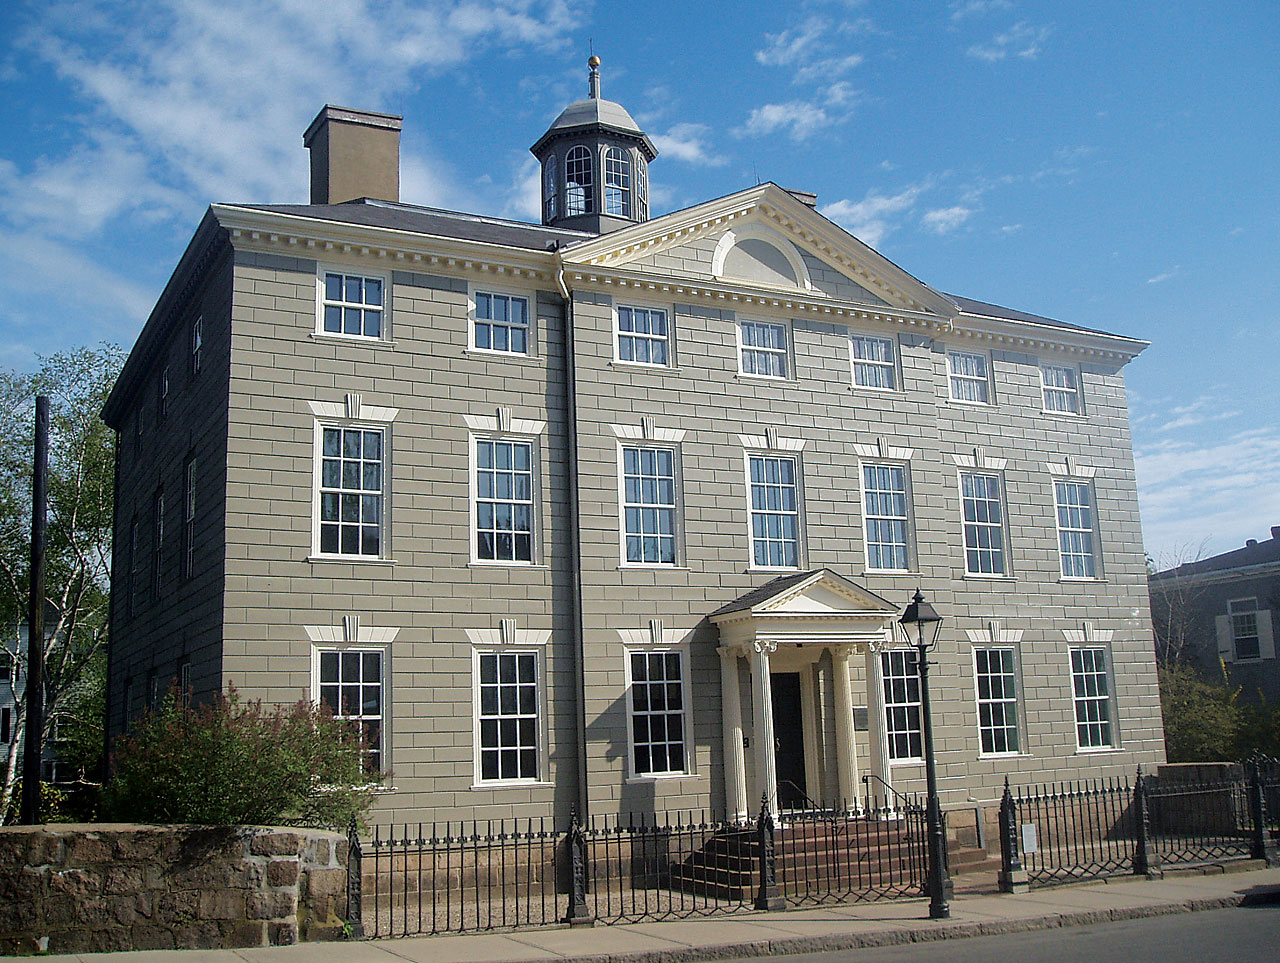 4 jeremiah lee mansion marblehead marblehead museum historical society - Mansion Architectural Styles